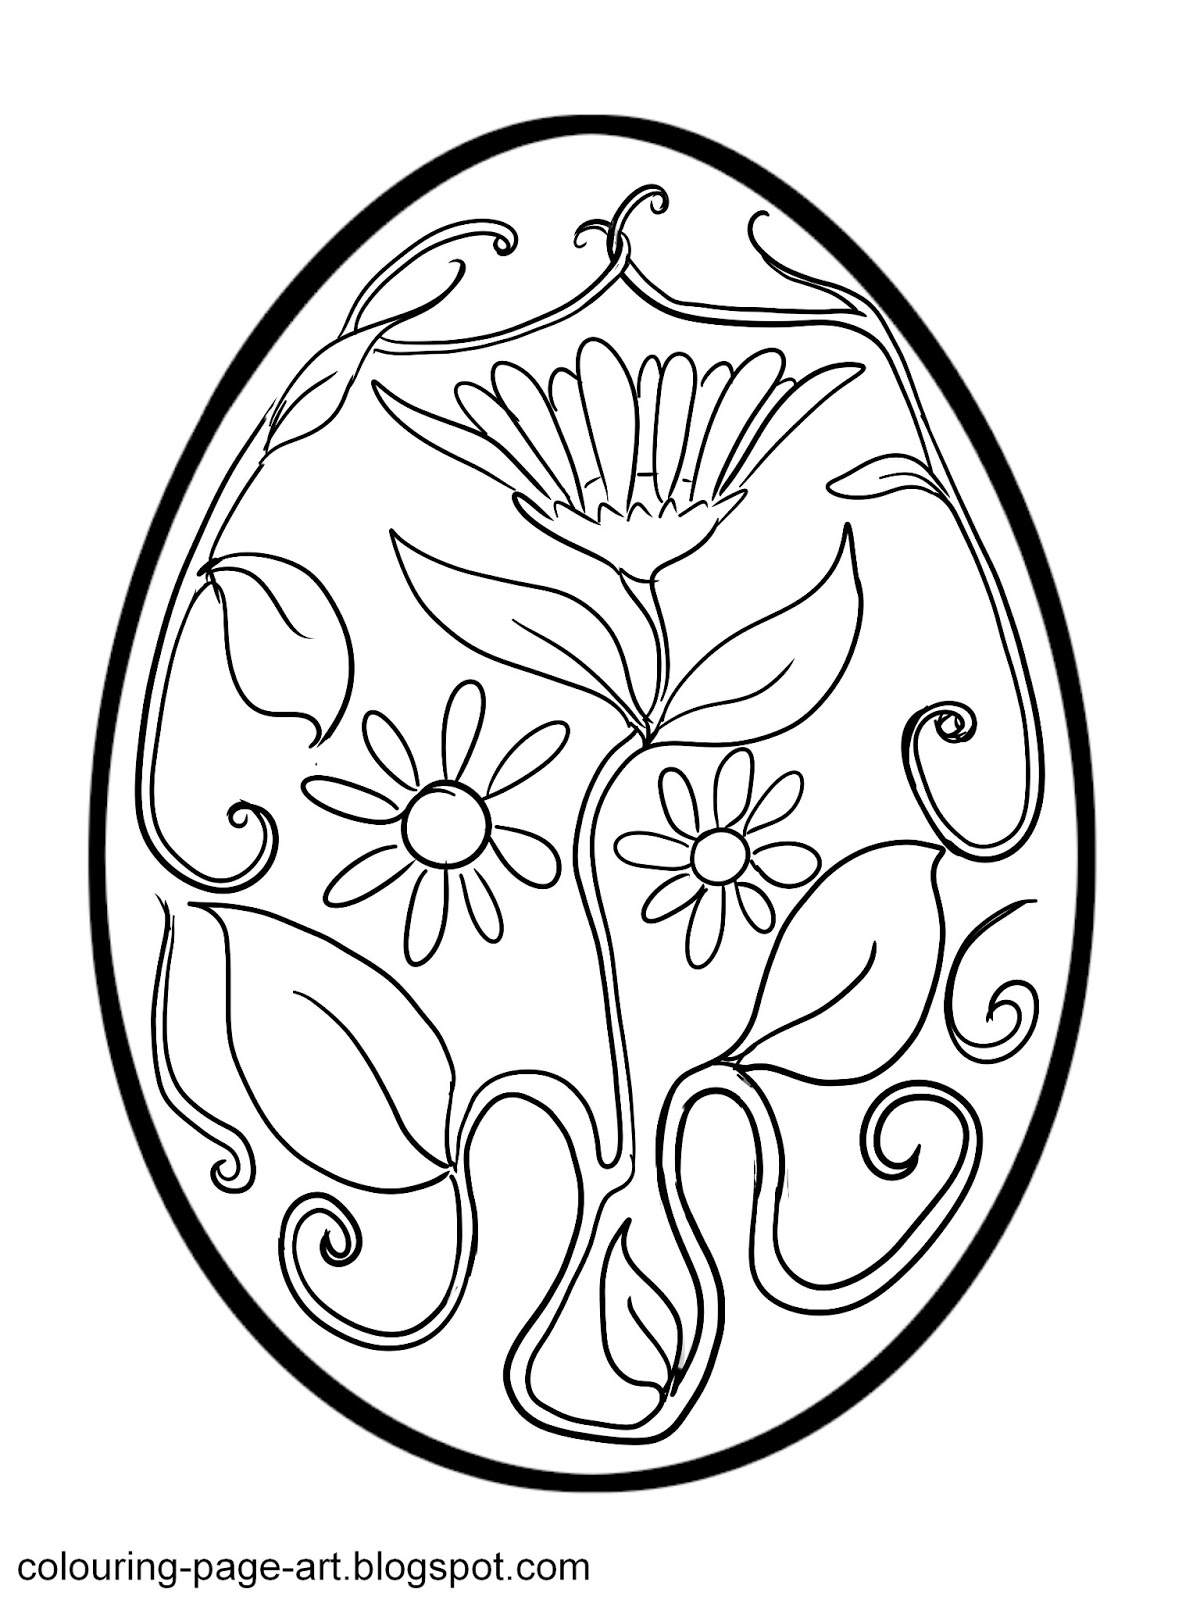 Colouring Page Art: Flower Power Easter Egg Colouring Page